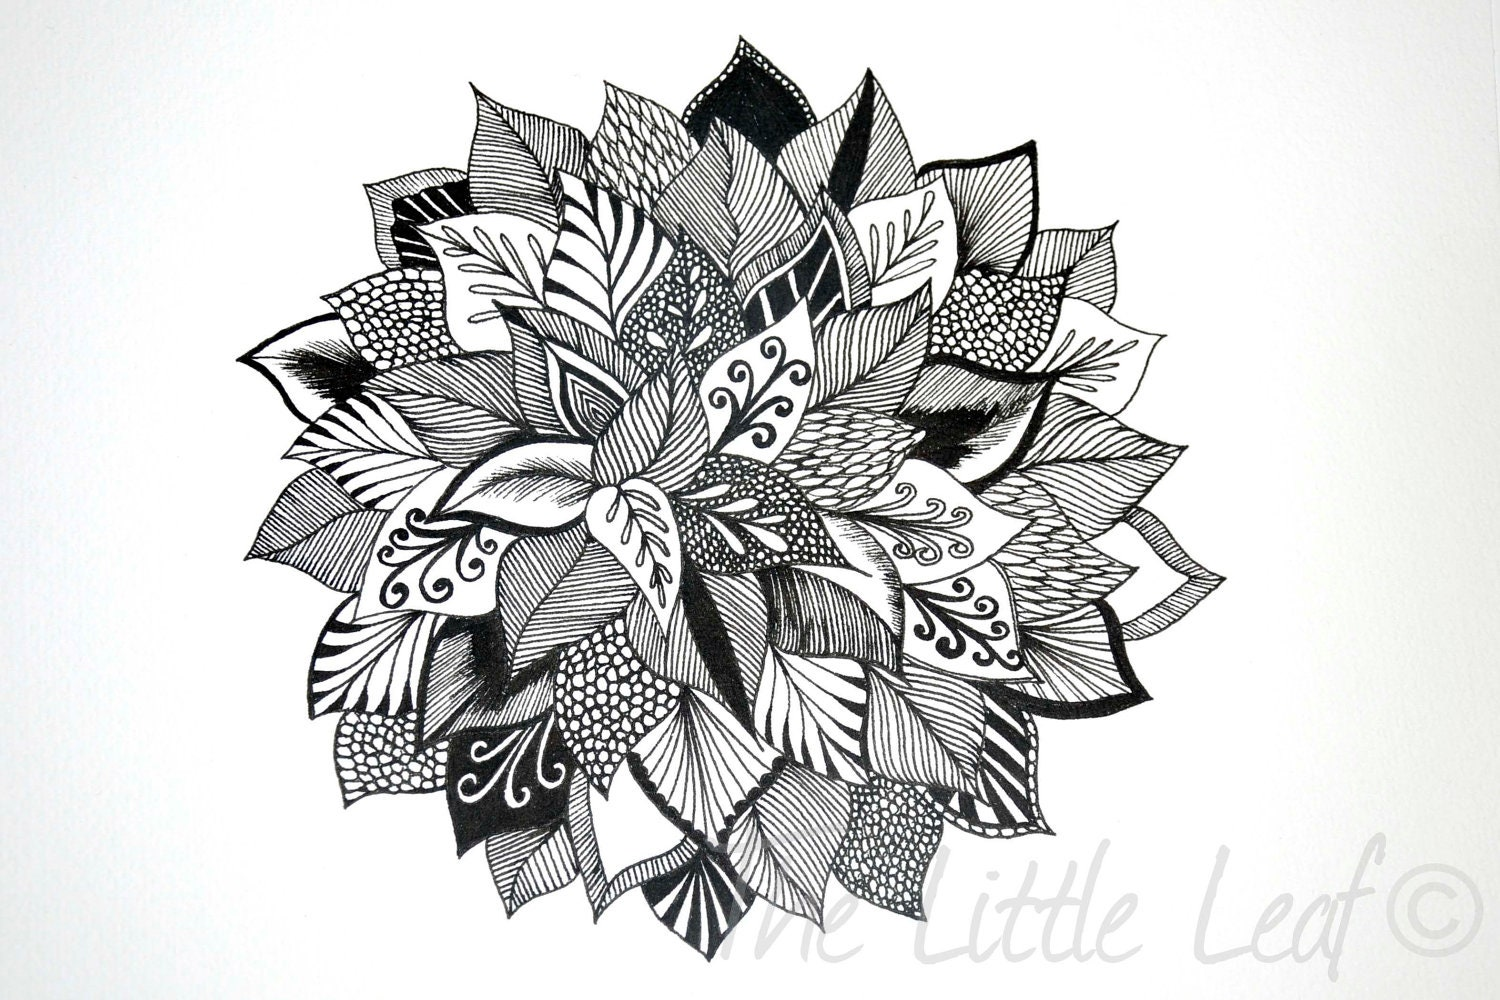 Original Abstract Floral Zentangle Drawing 8x10 Unframed